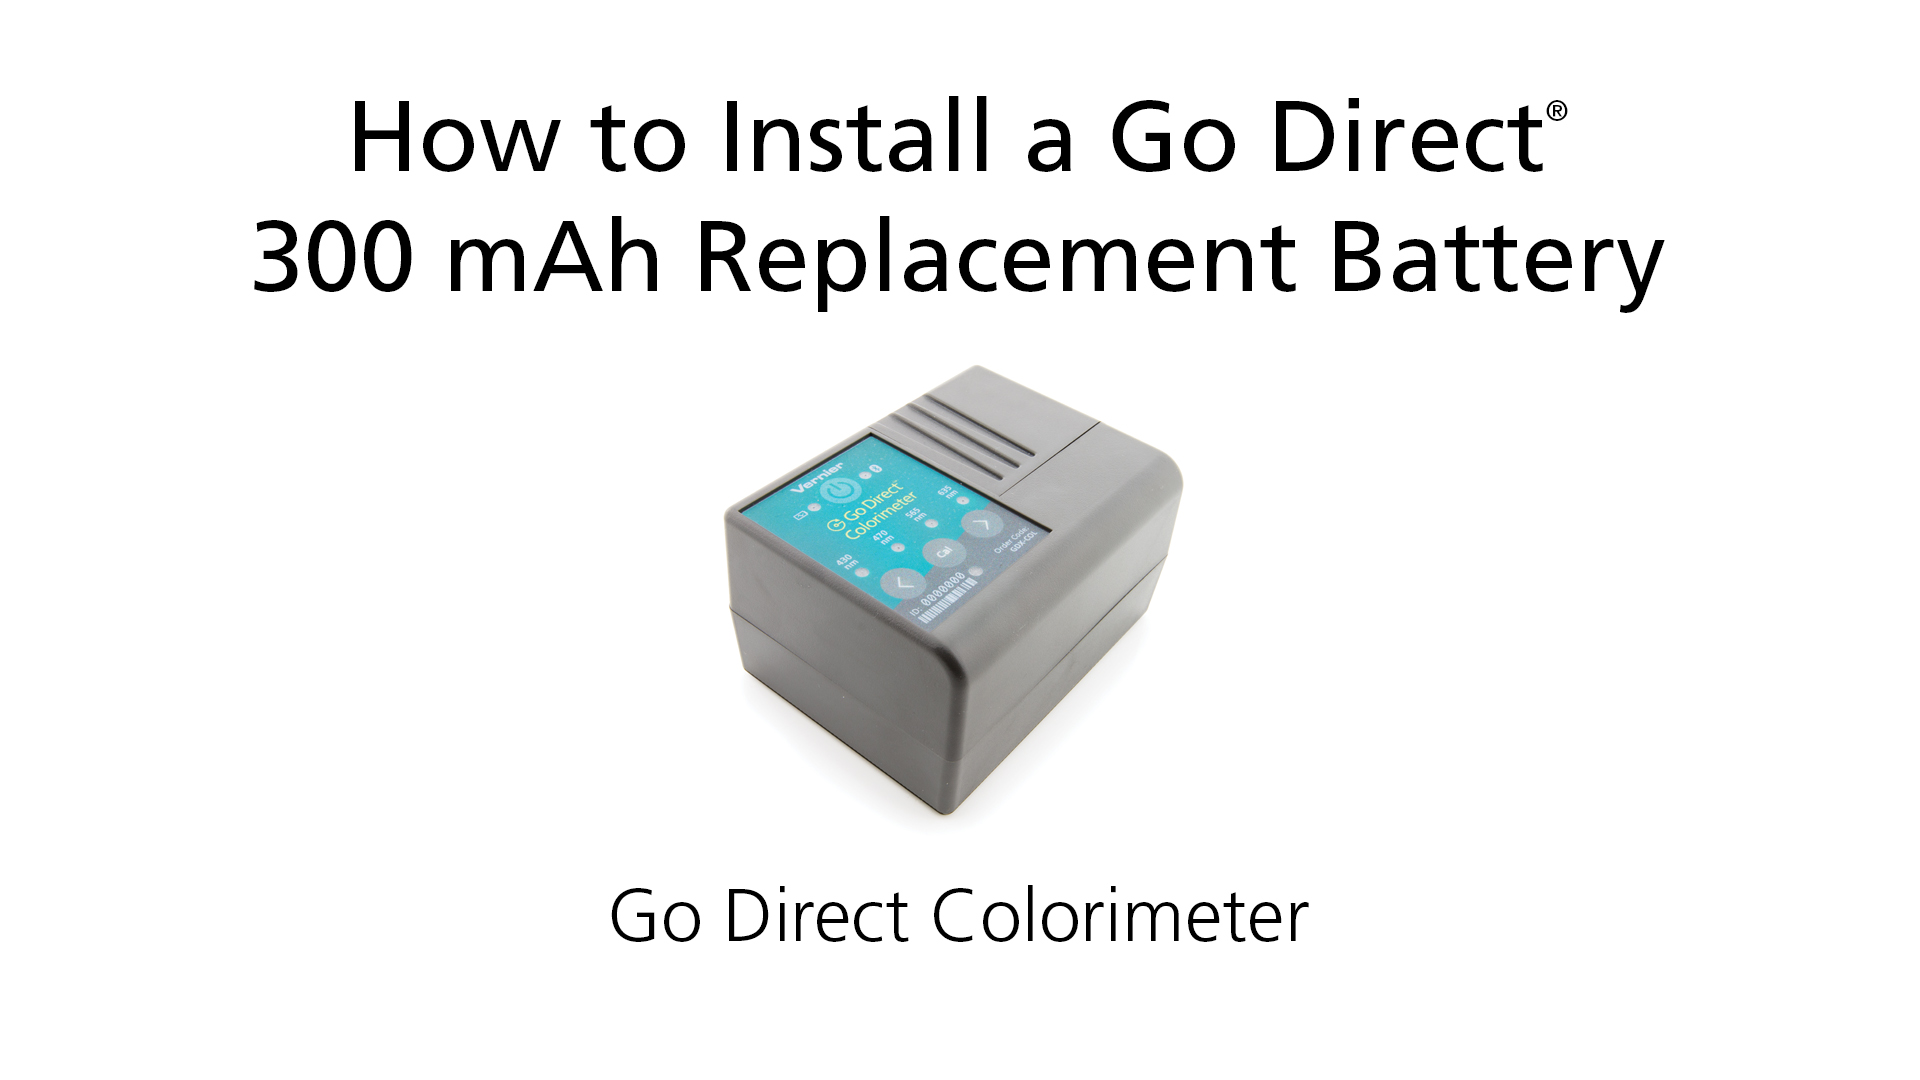 How to Install a Go Direct® 300 mAh Replacement Battery in Go Direct Colorimeter video